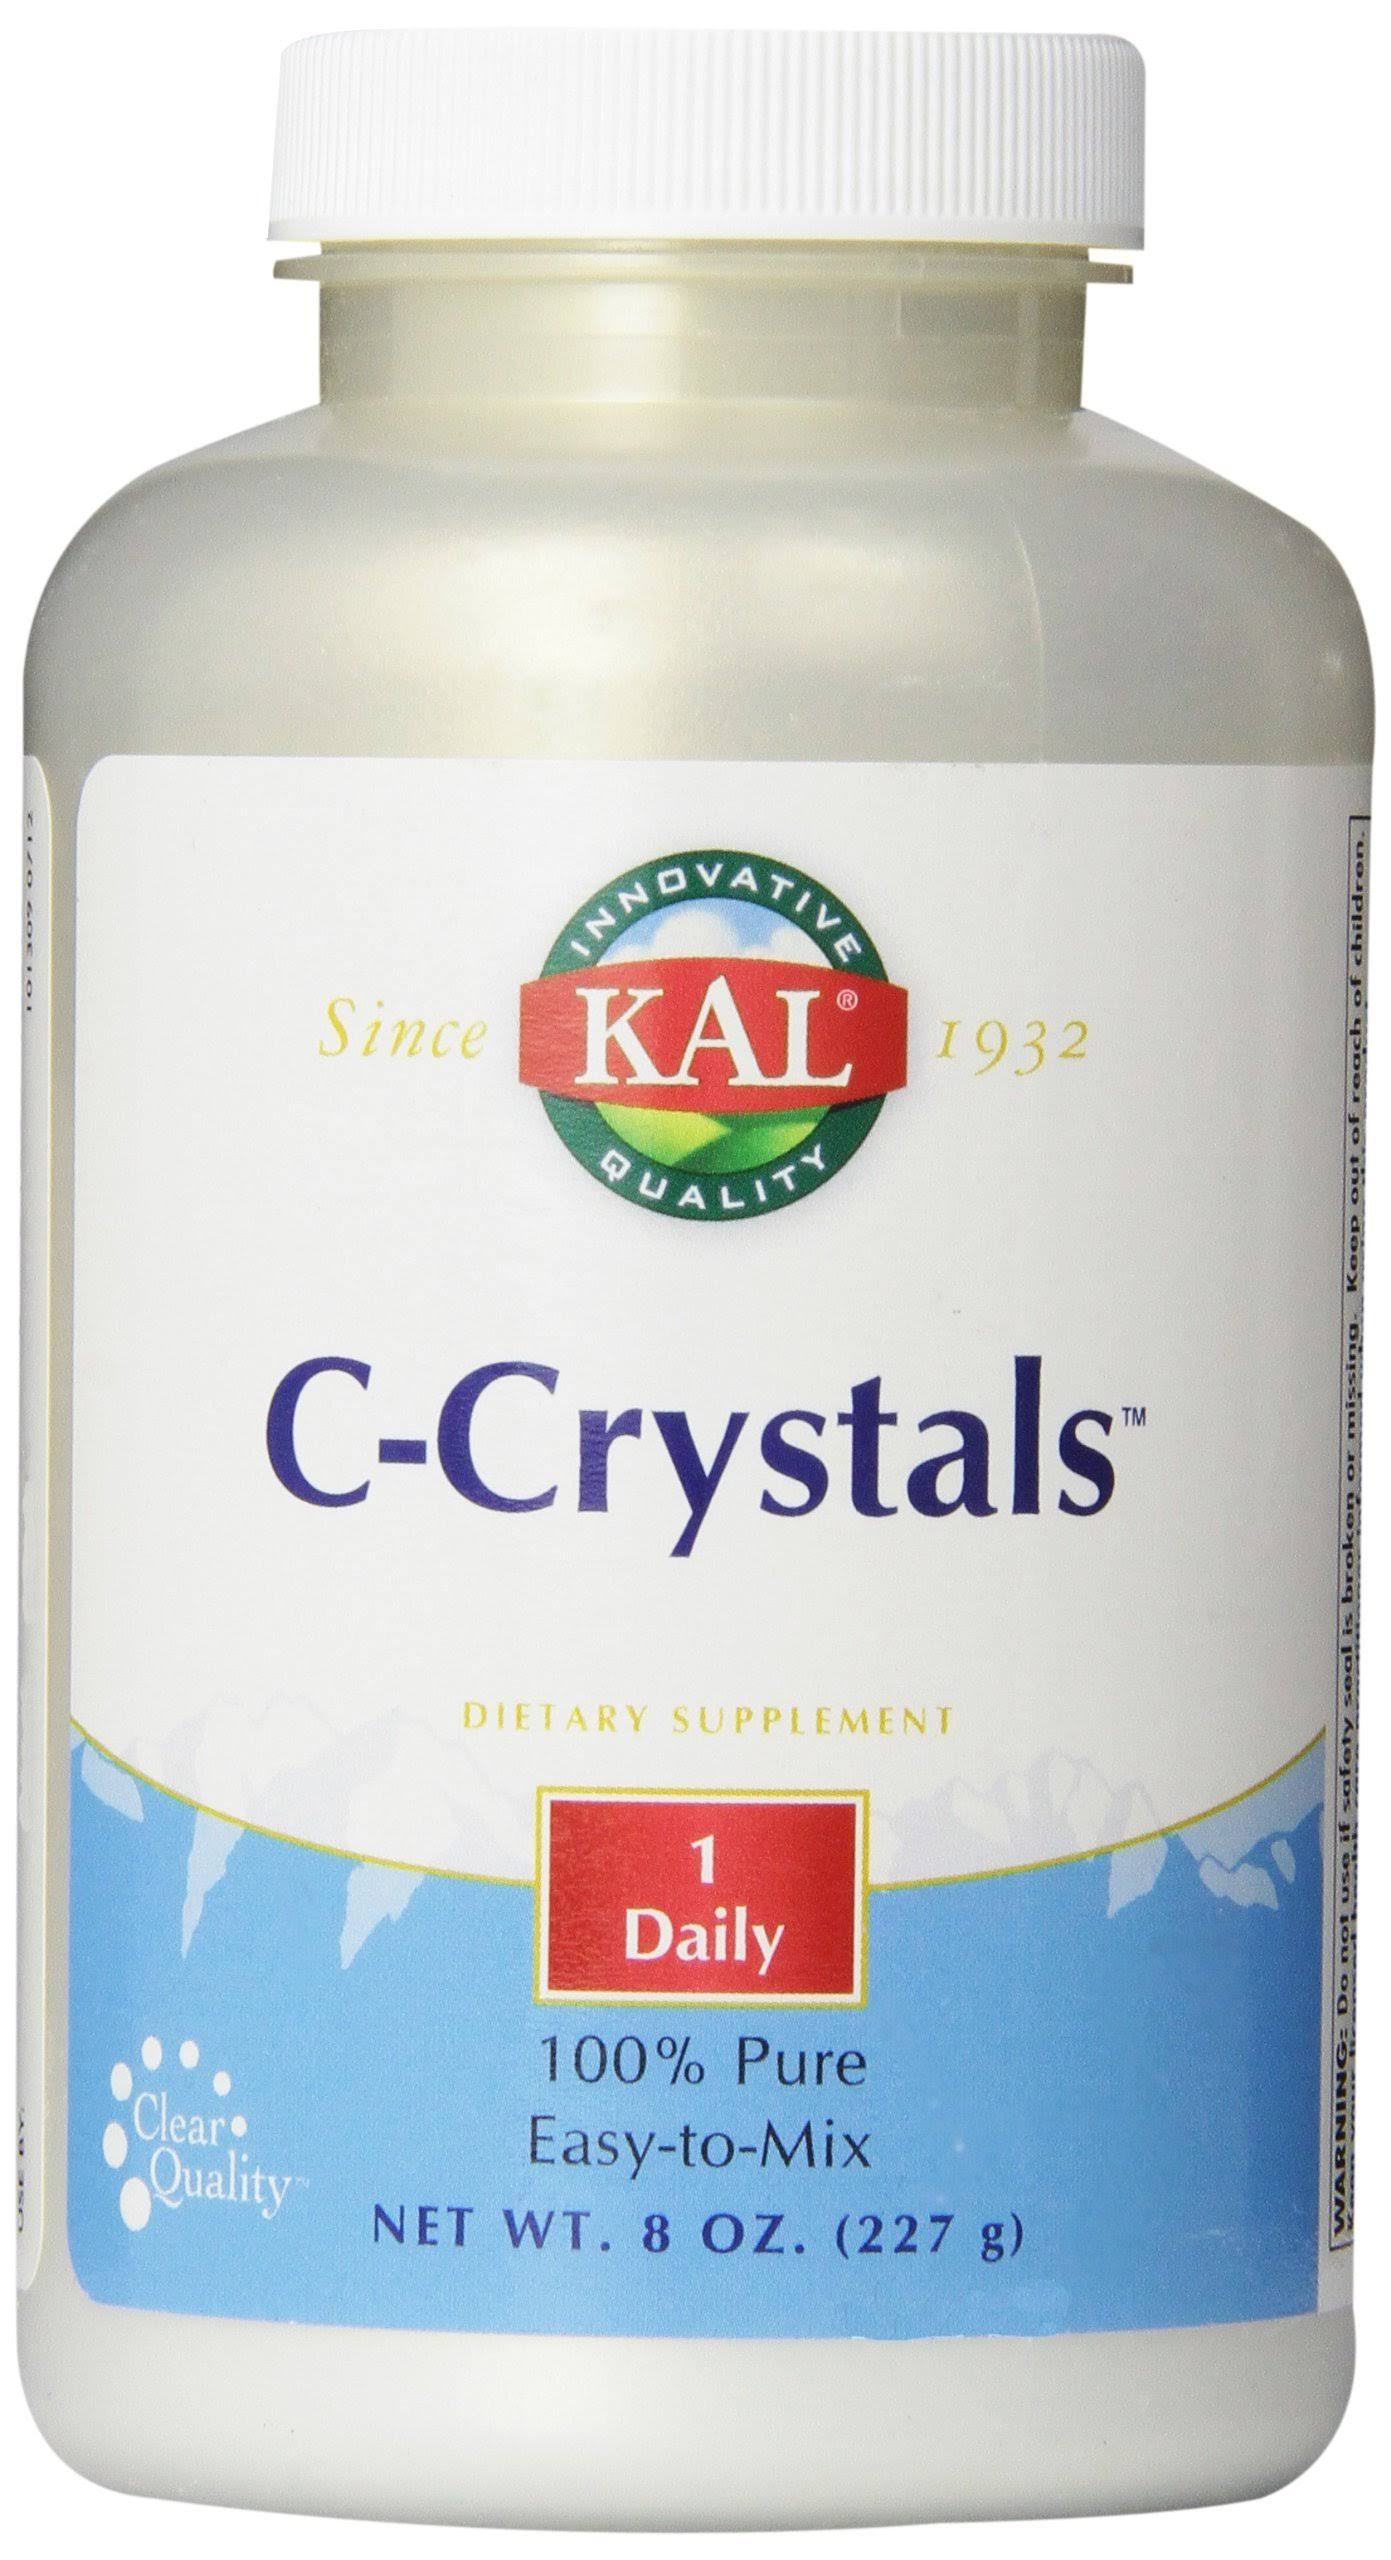 Kal C Crystals Dietary Supplement - 8oz